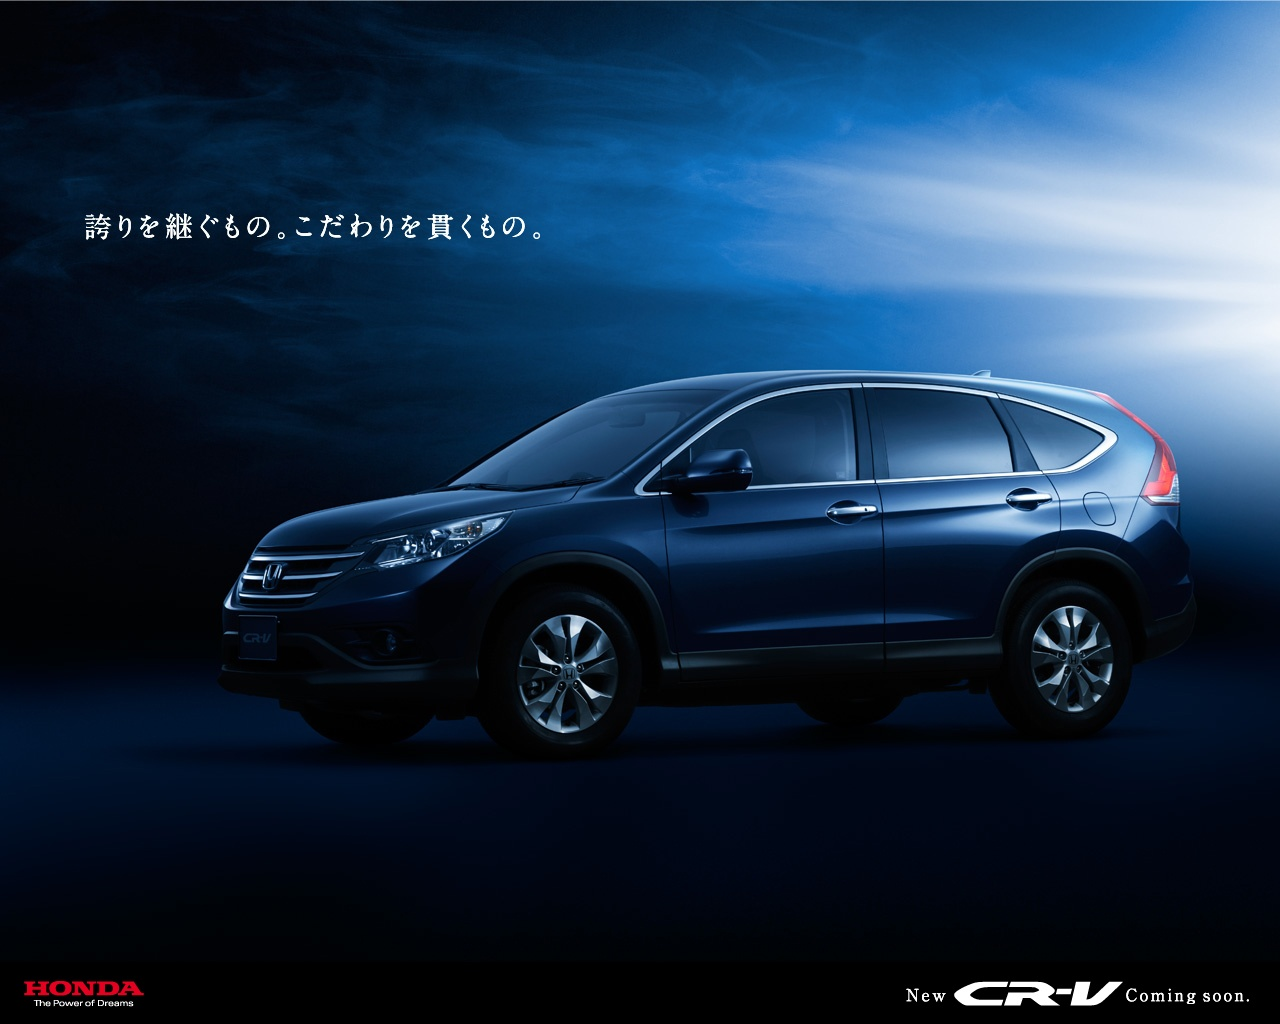 Honda Crv Wallpaper Best Of Official 2012 Honda Cr V Wallpapers On Hondas Japan Site Motor Trend-810 Of Inspirational Honda Crv Wallpaper-810